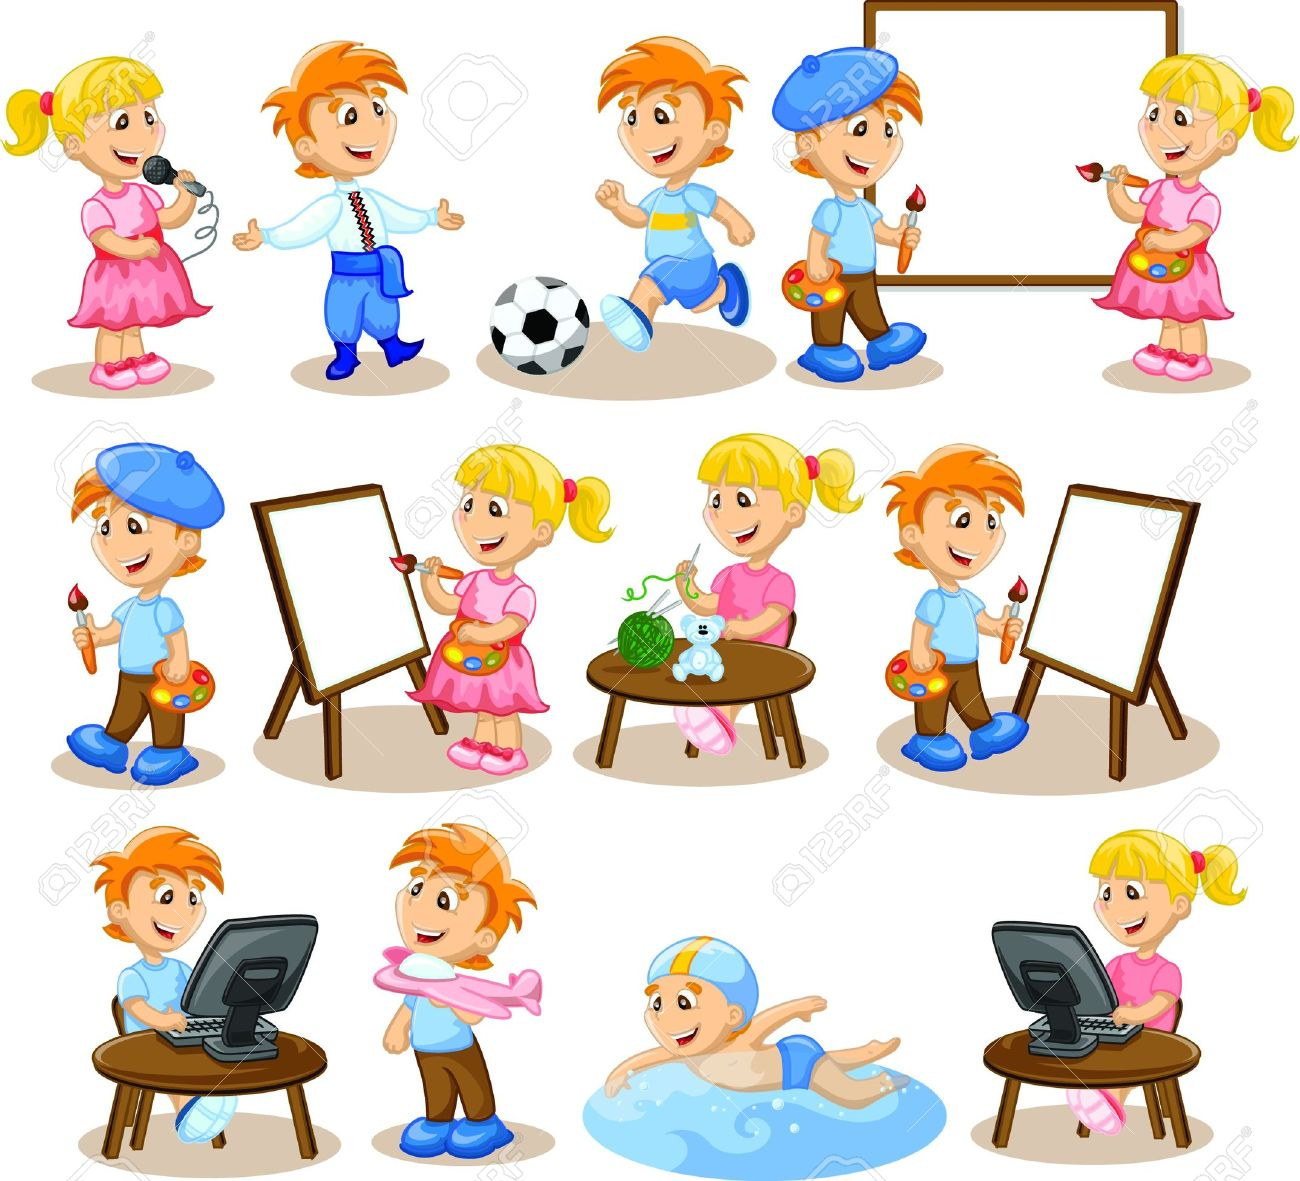 Children Are Engaged In The Hobbies Royalty Free Cliparts Vectors And Stock Illustration Image 17686314